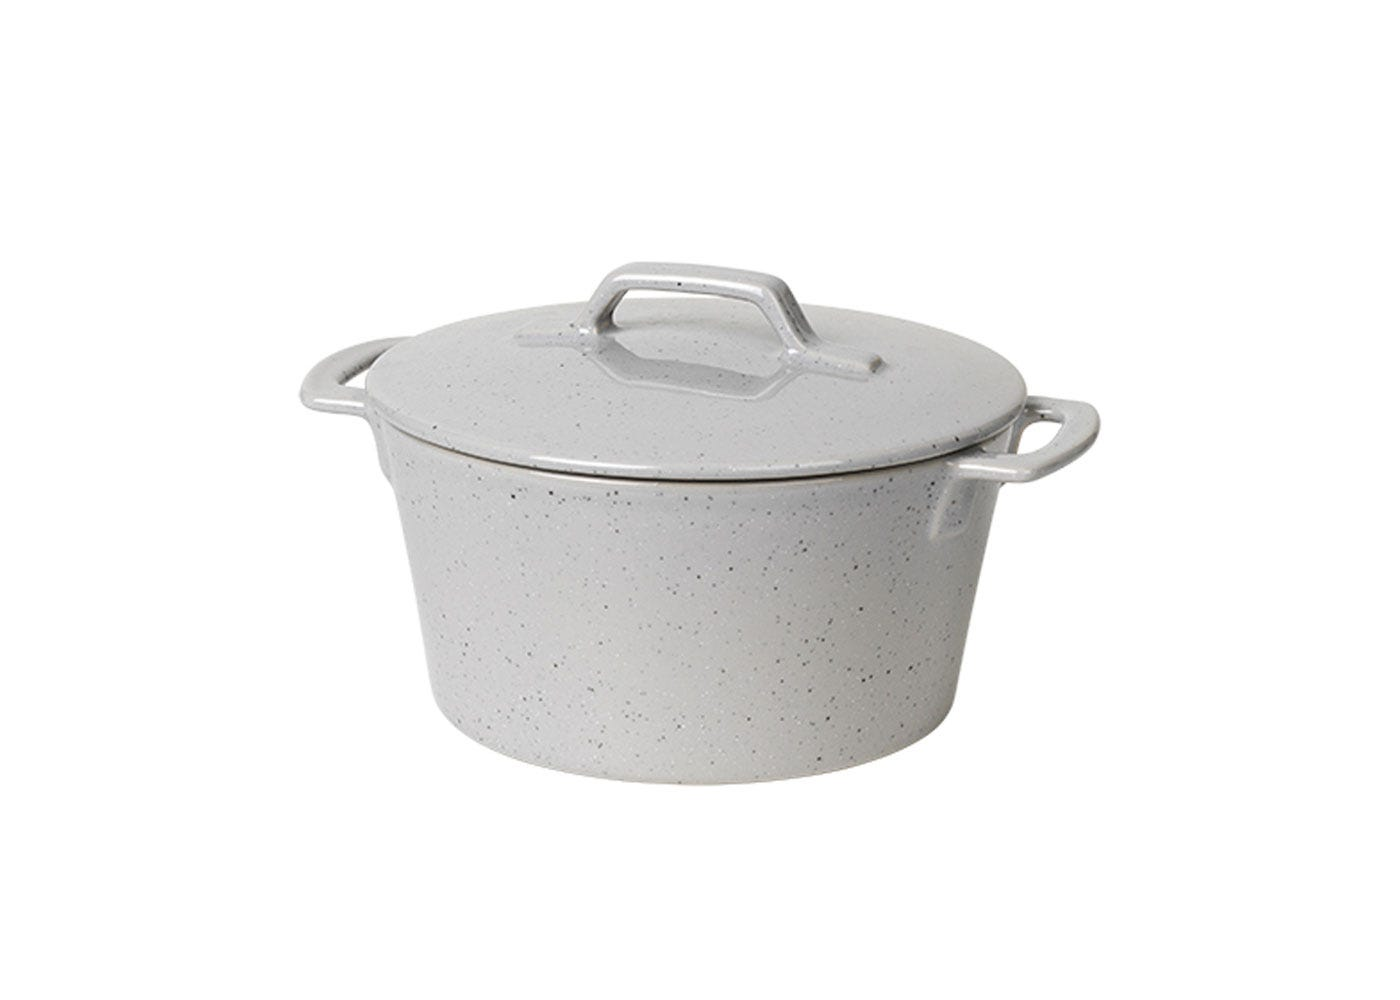 As Shown: Hasle Round Oven Dish with Lid in Light Grey